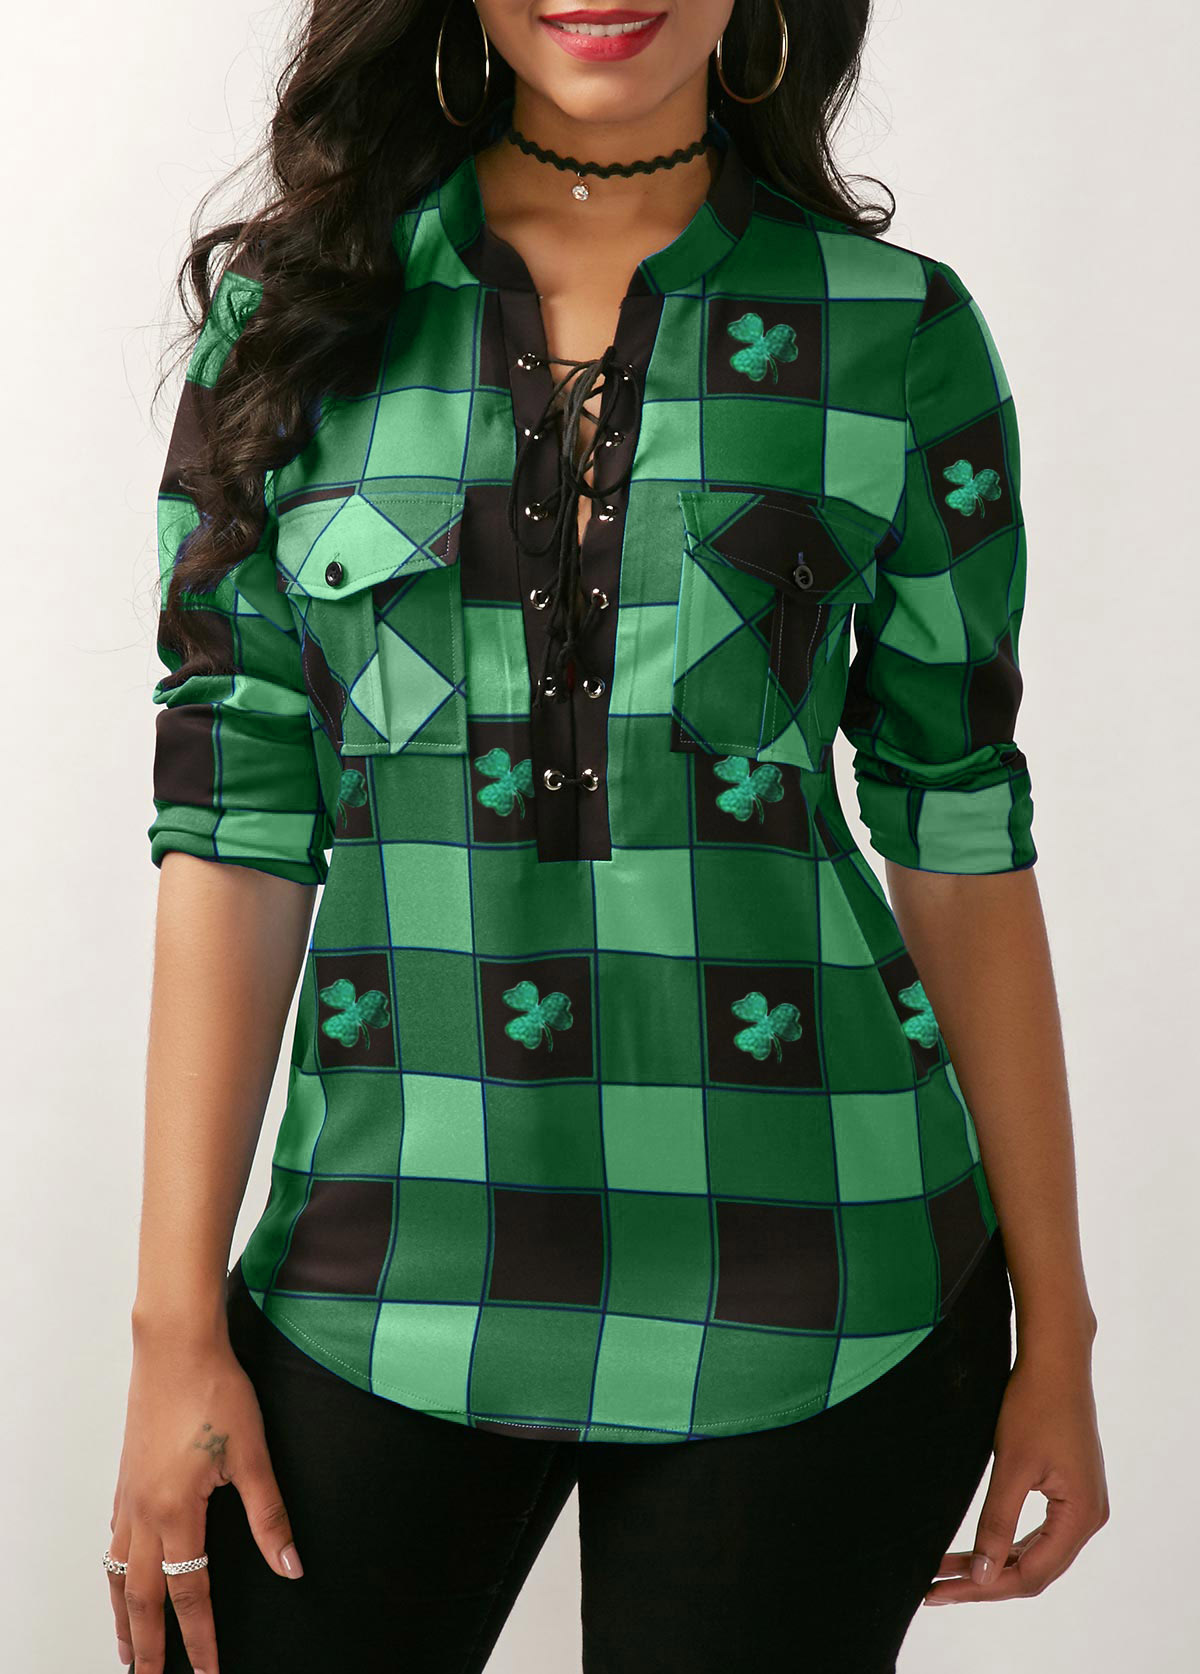 Plaid Print Lace Up Front ST Patricks Day Green Blouse